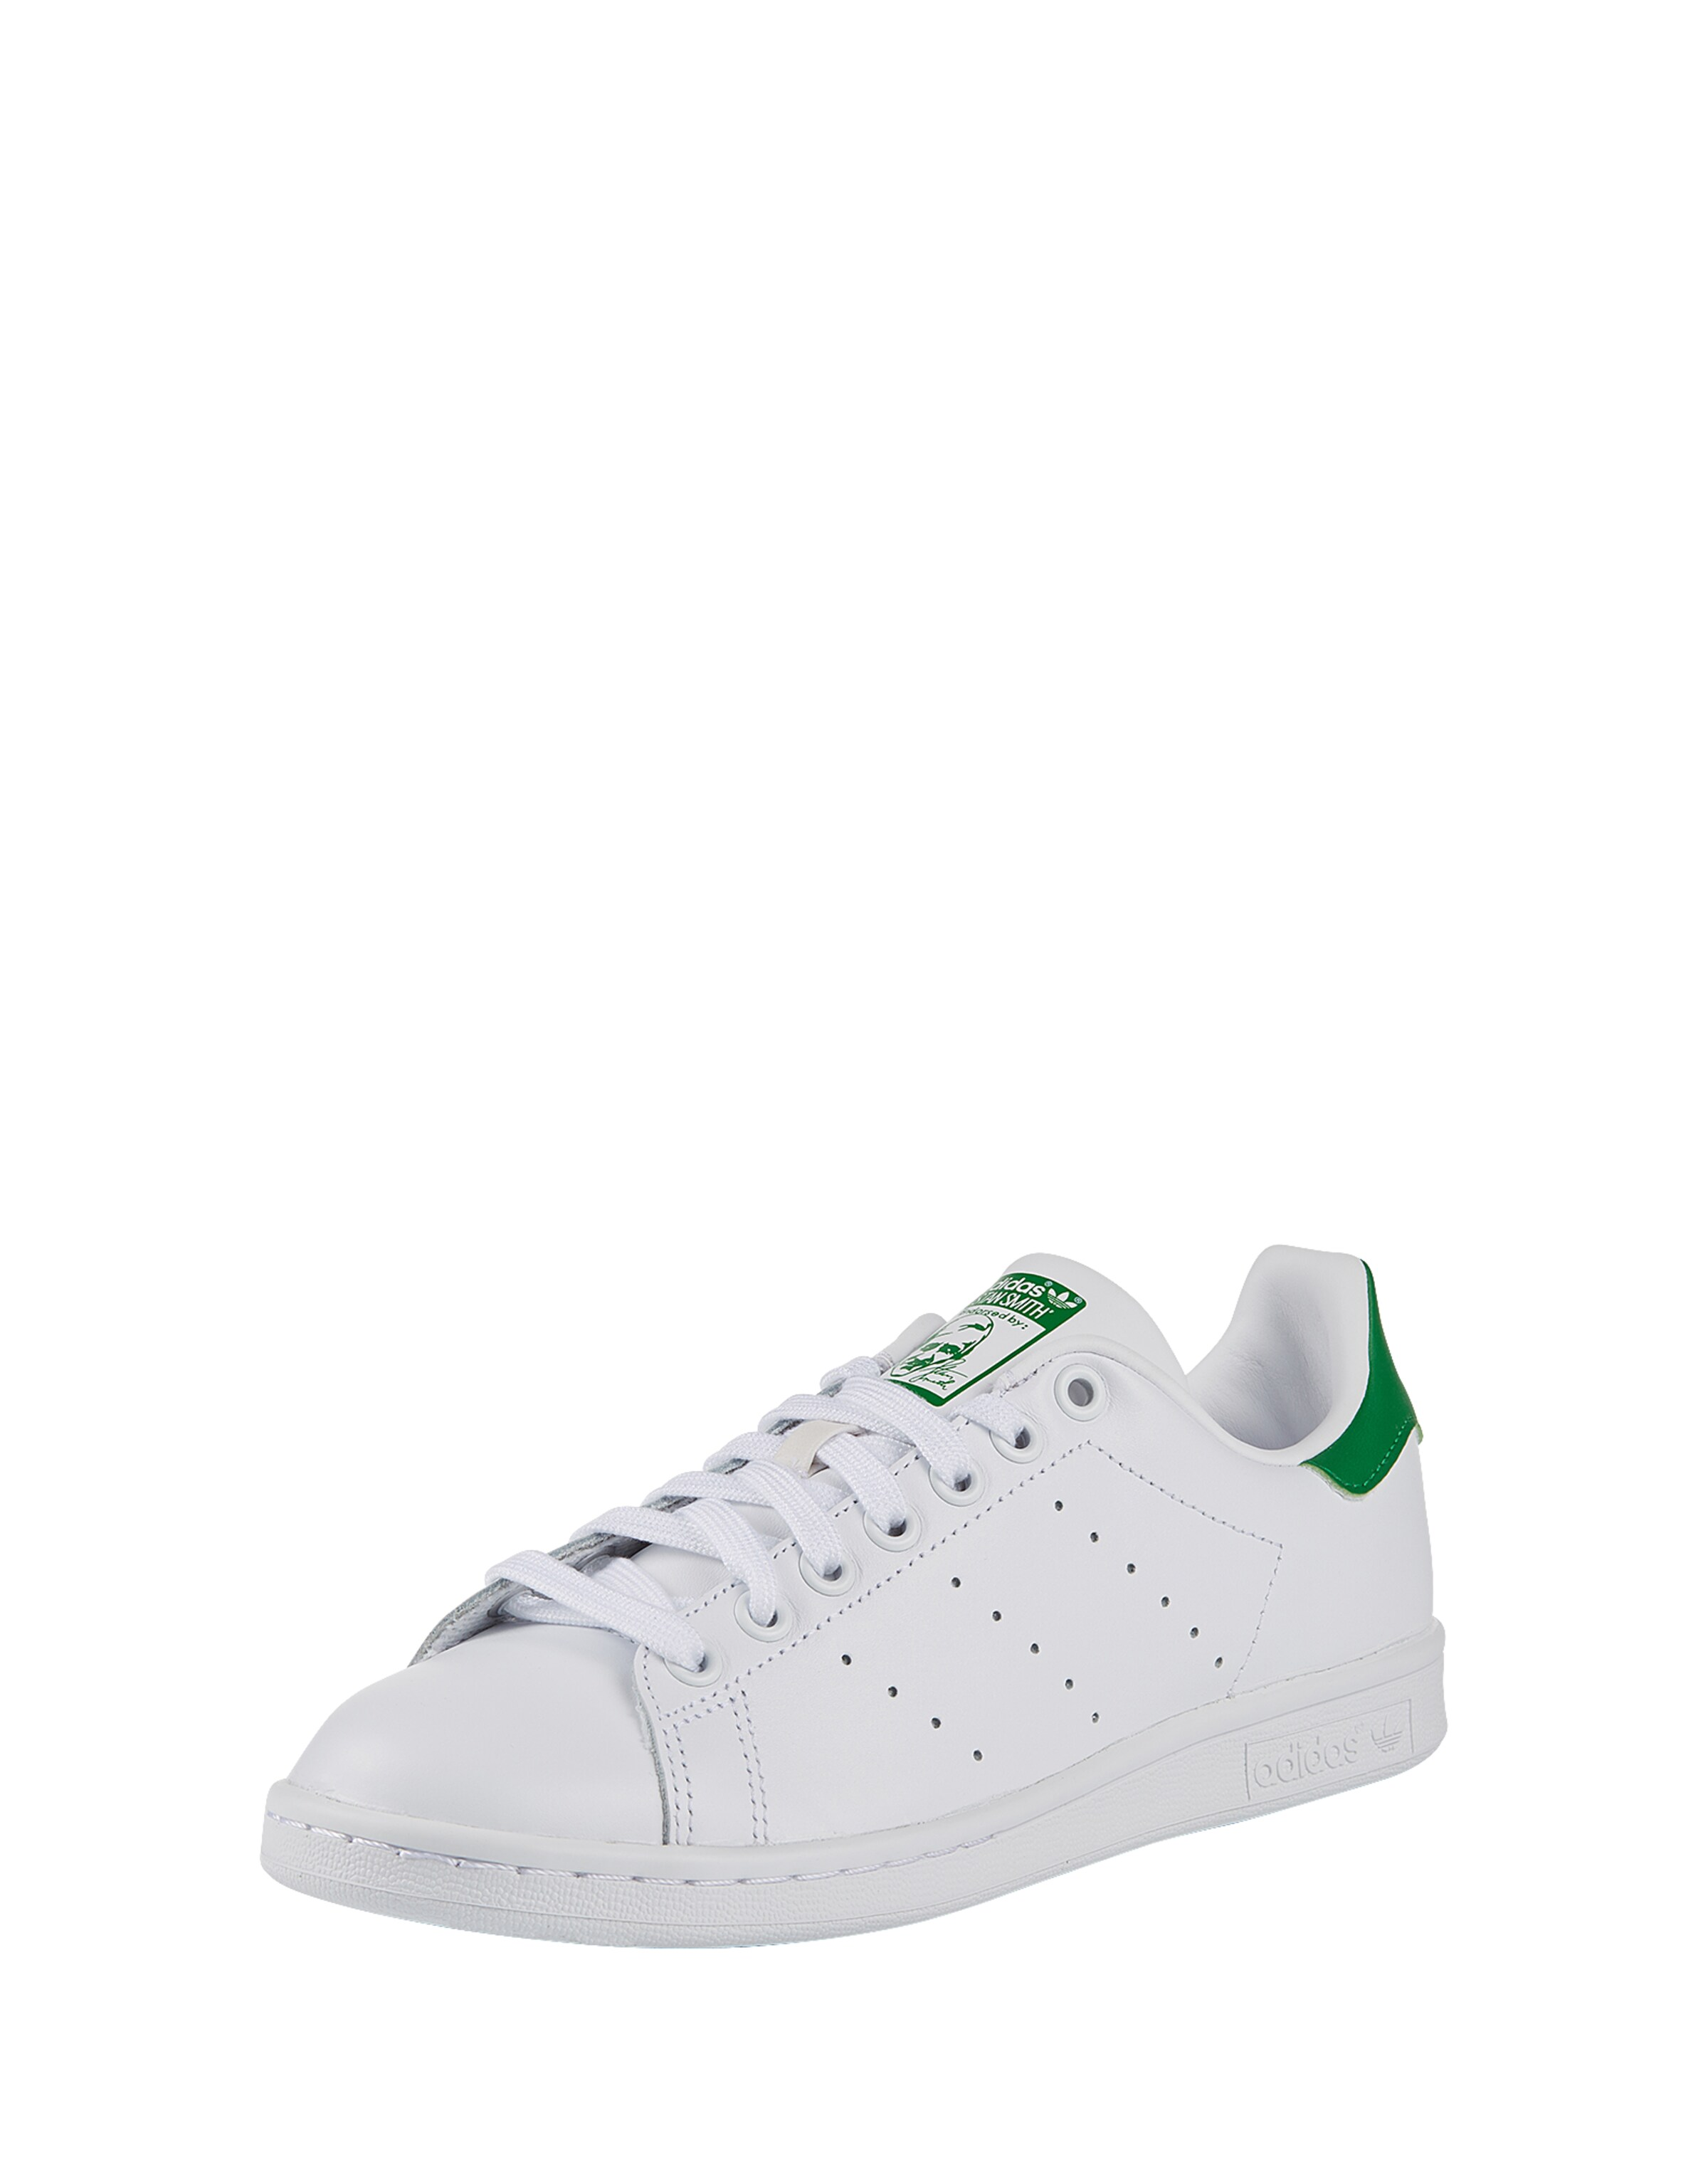 ADIDAS ORIGINALS | Flacher Turnschuheaus Leder  Stan Smith